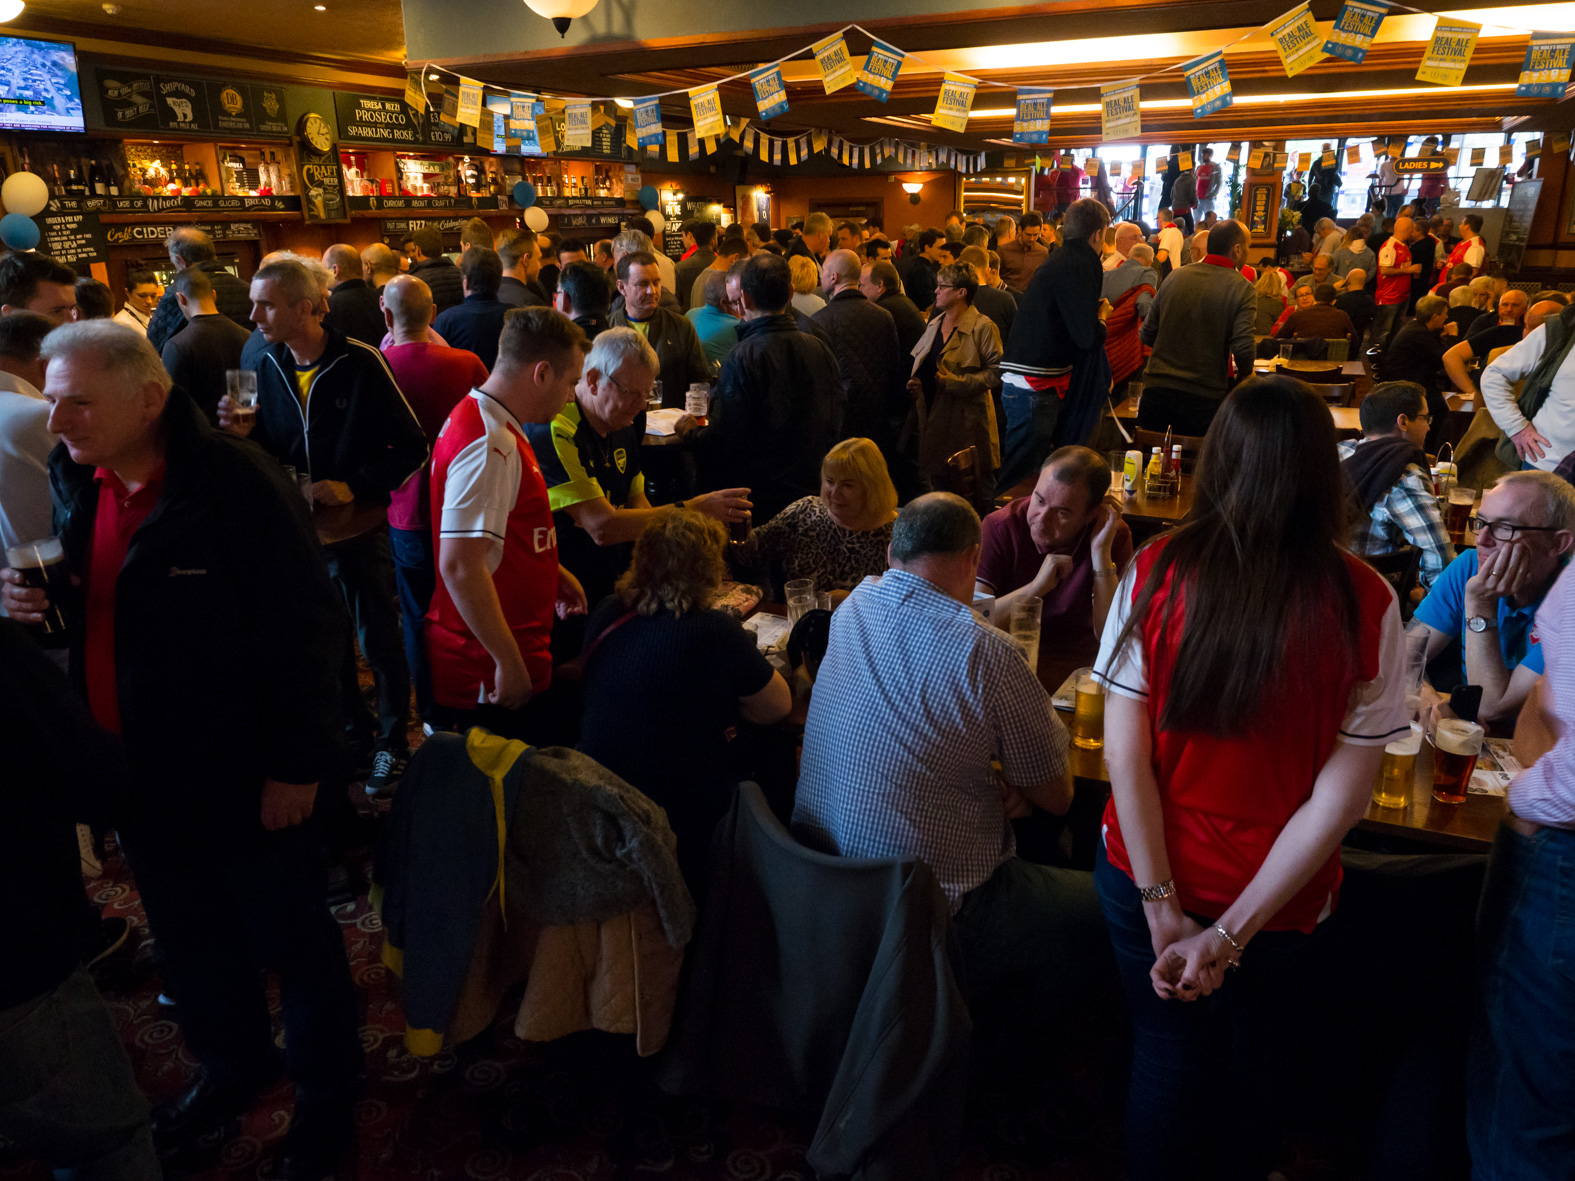 Arenal football club fans in The Coronet pub on match day. Holloway, London.